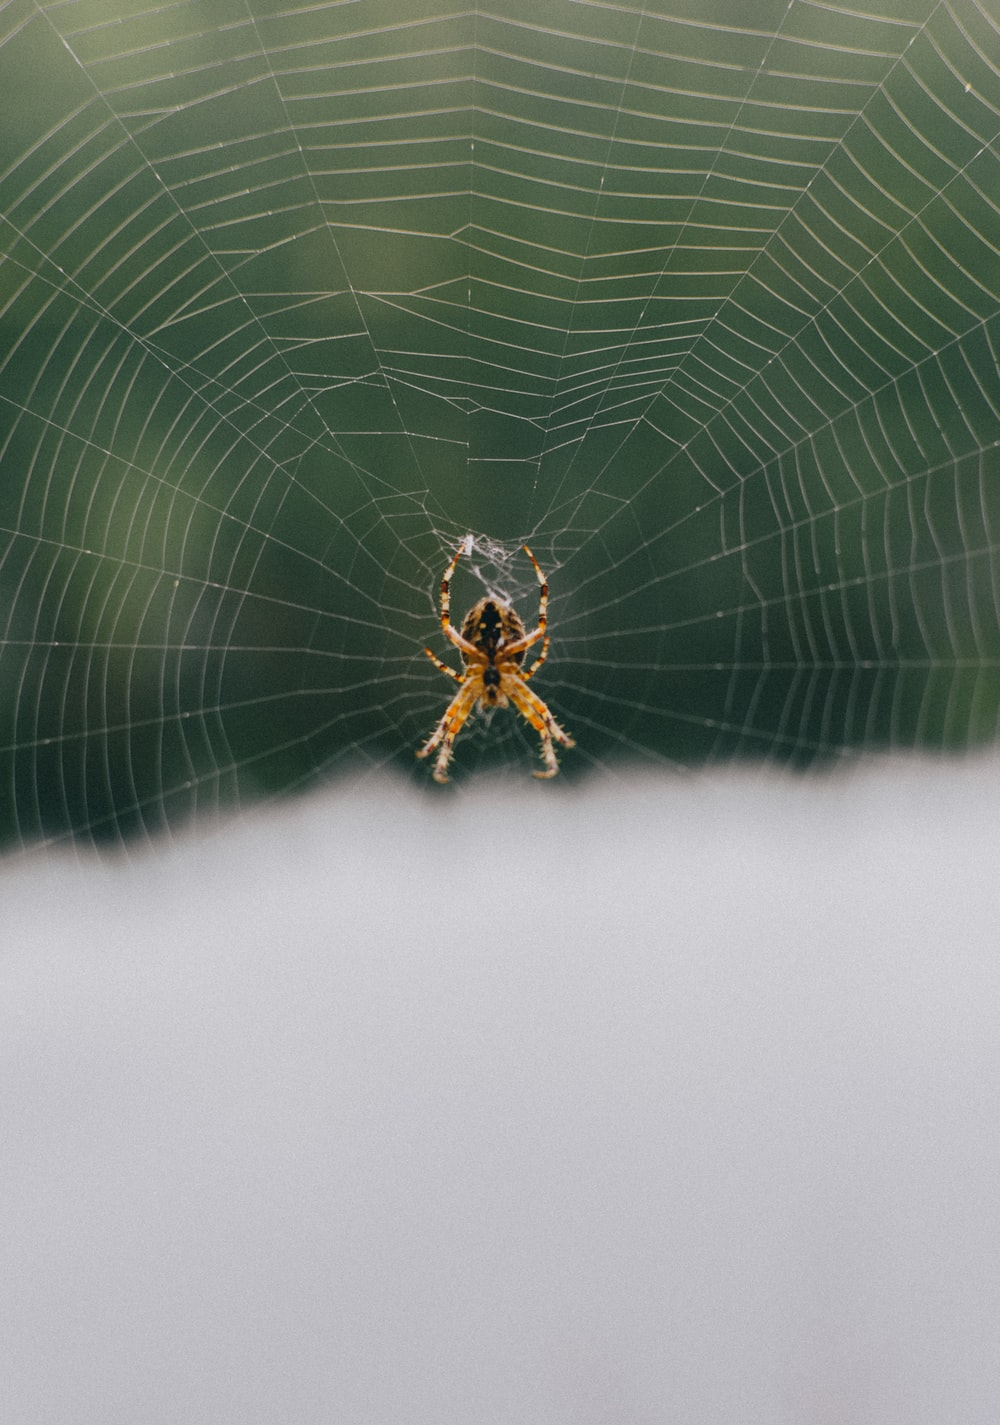 close-up photo of barn spider